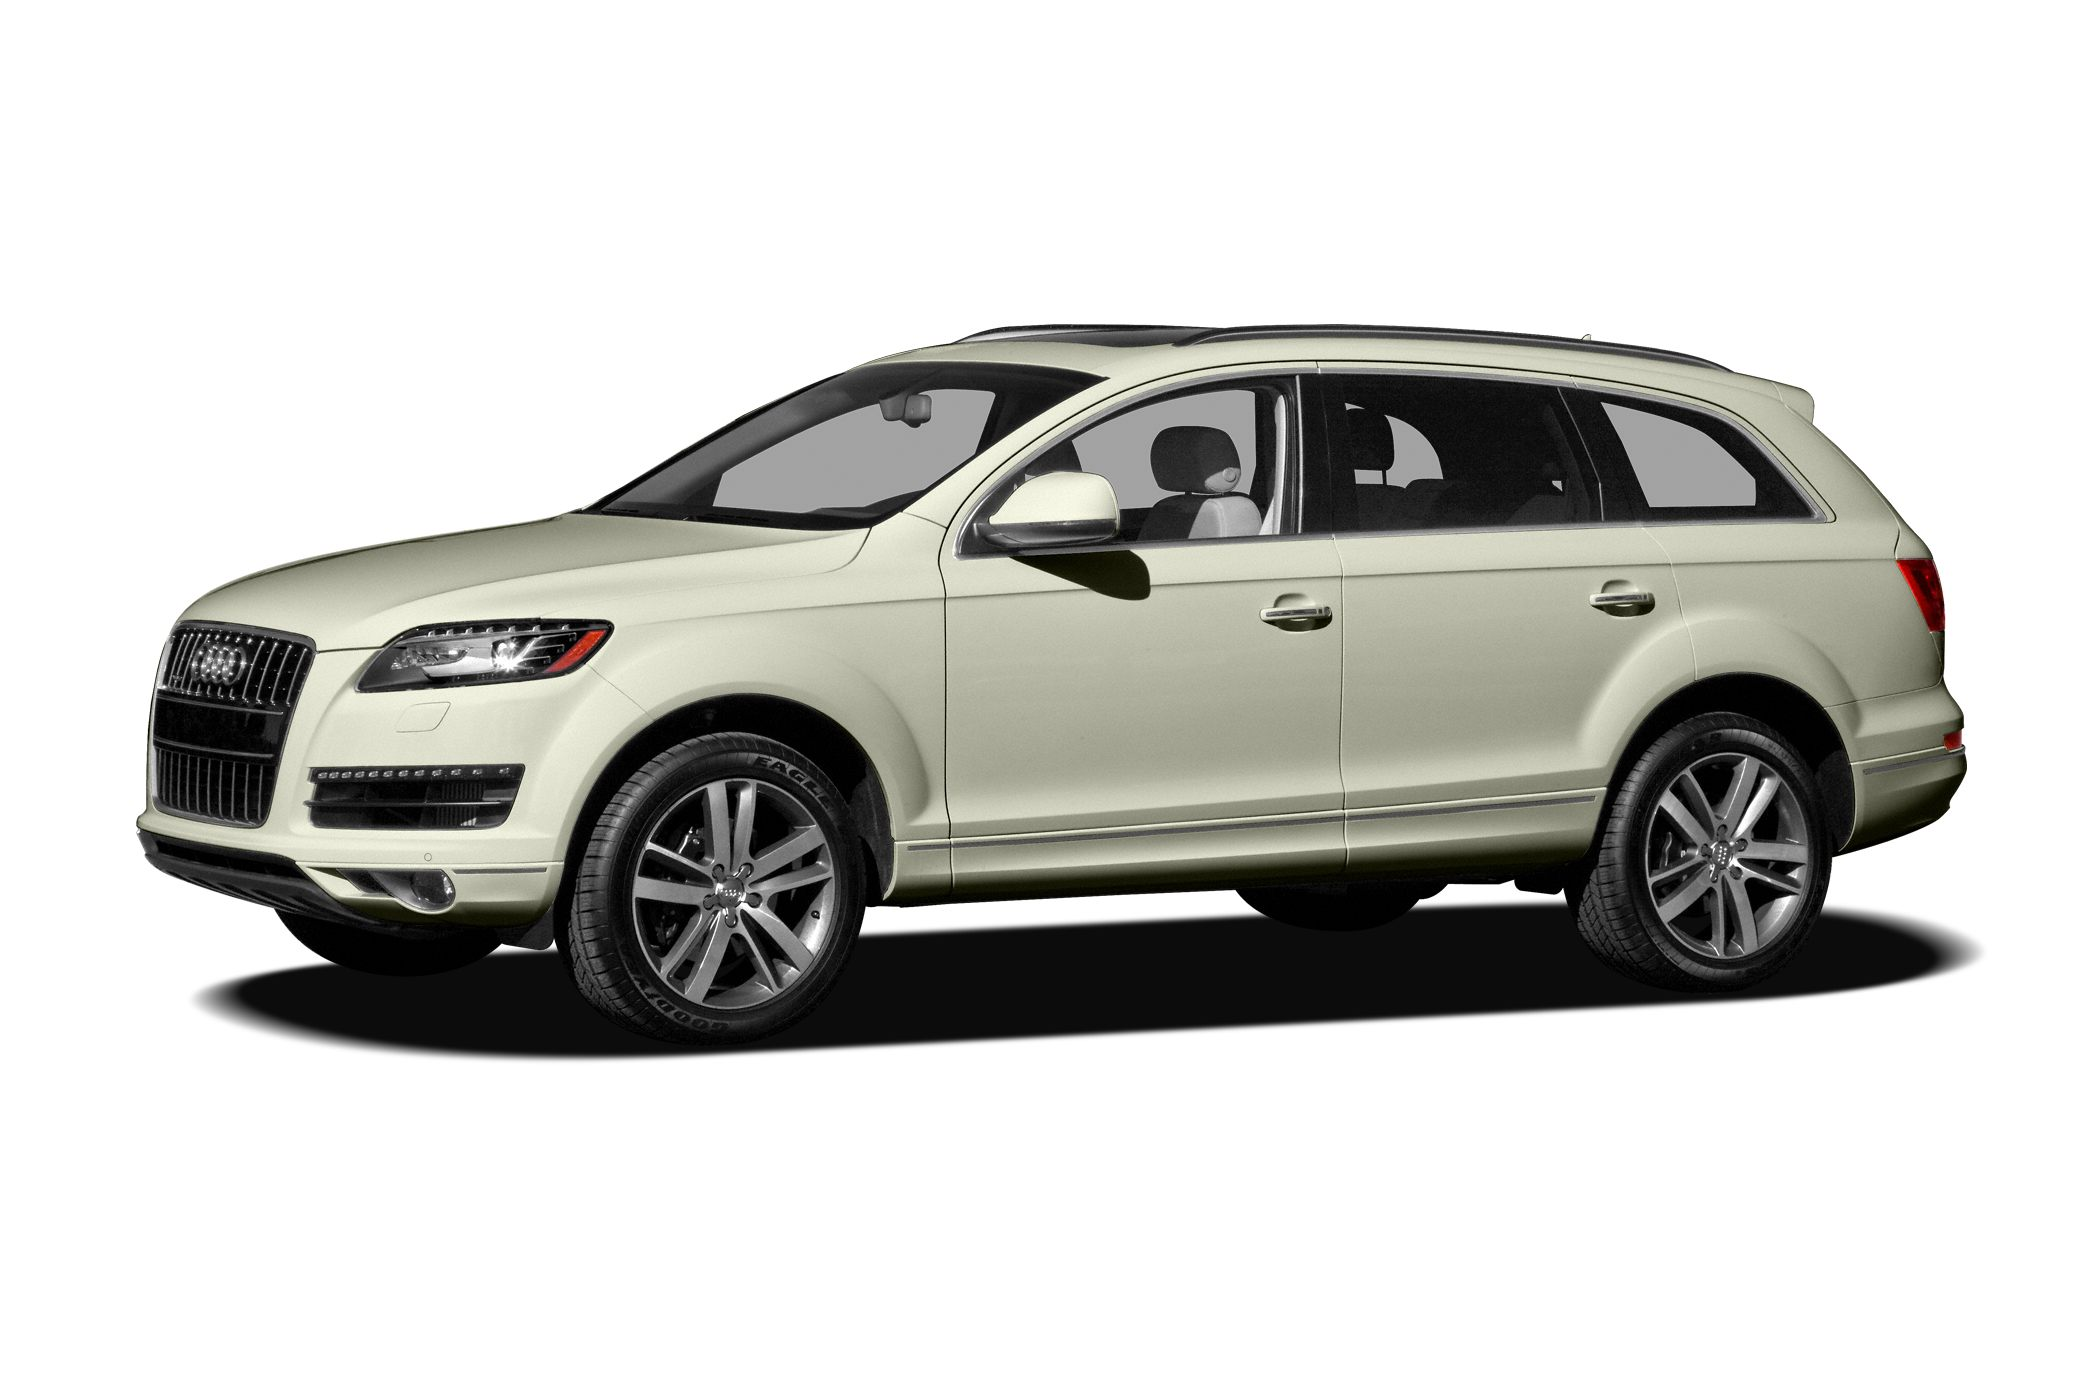 com and drivemeonline egos front bigger review families for audi big